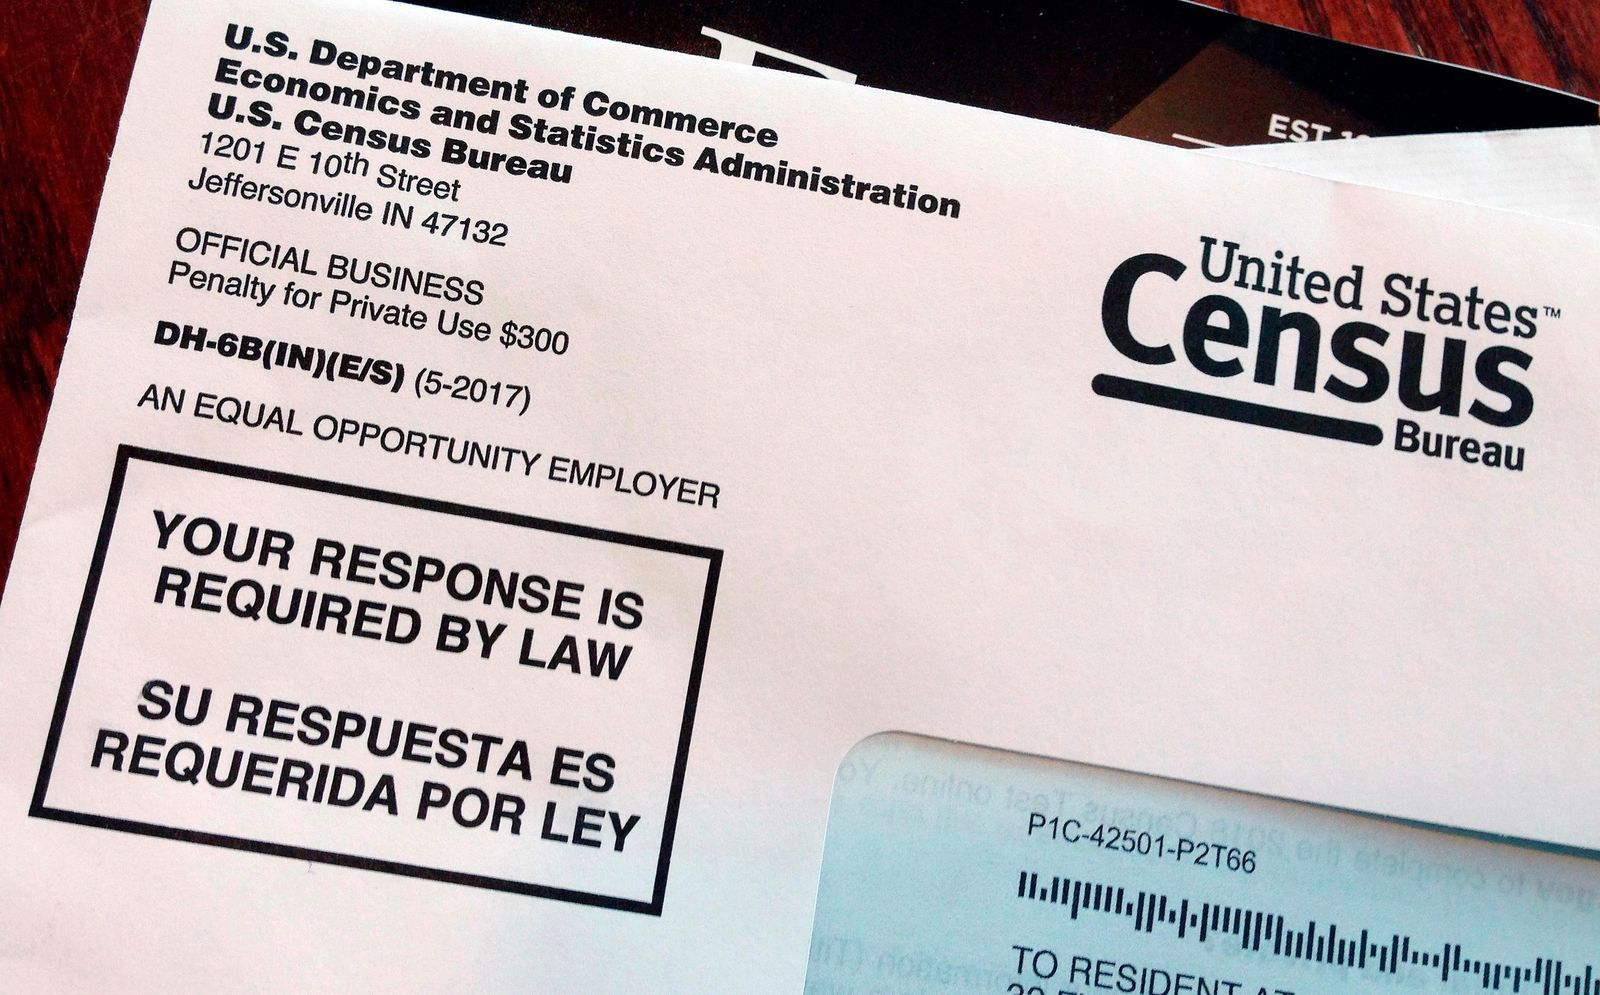 FILE - This March 23, 2018, file photo shows an envelope containing a 2018 census letter mailed to a U.S. resident as part of the nation's only test run of the 2020 Census. (AP Photo/Michelle R. Smith, File)